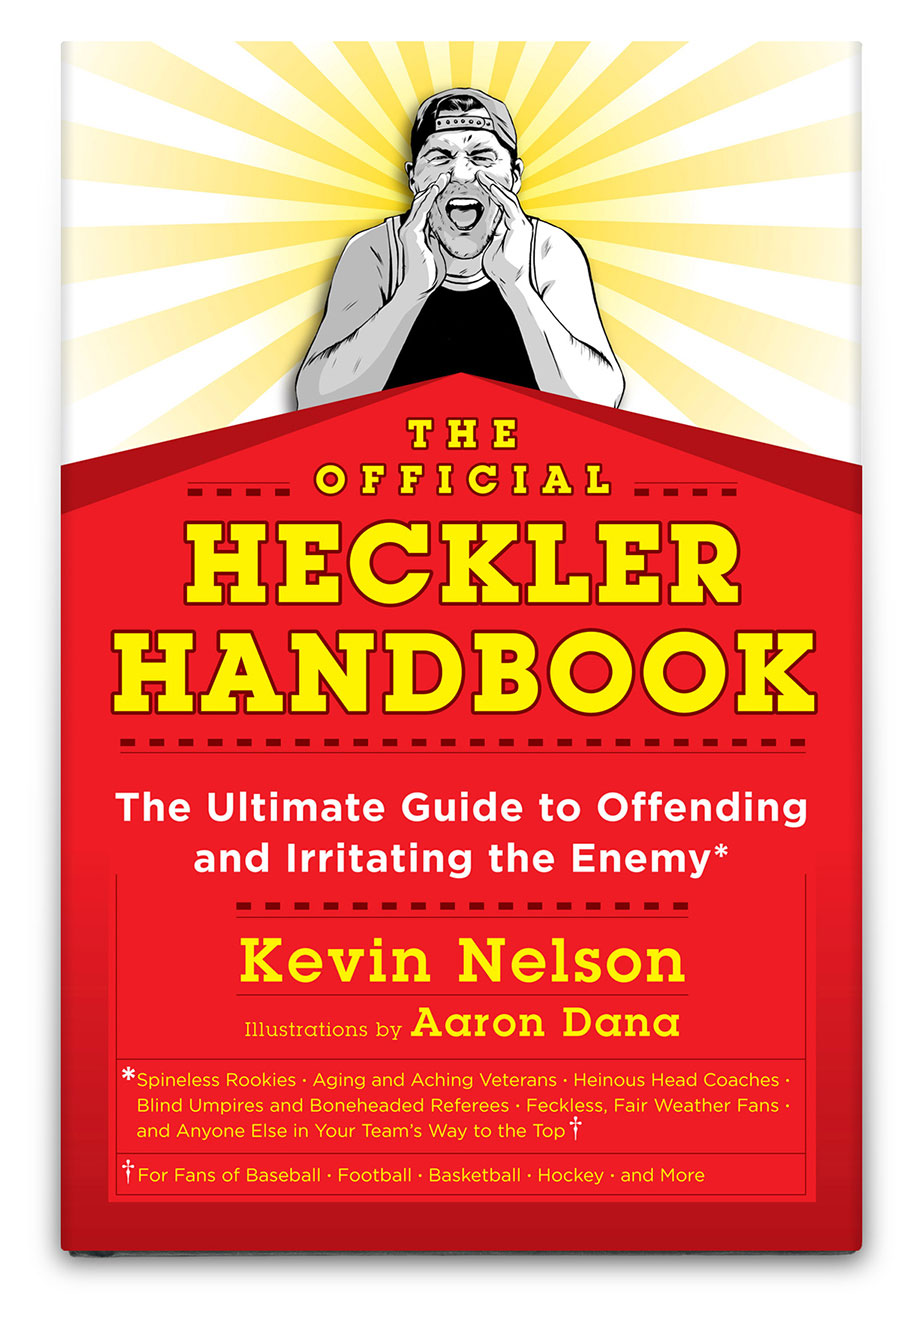 THE OFFICIAL HECKLER HANDBOOK